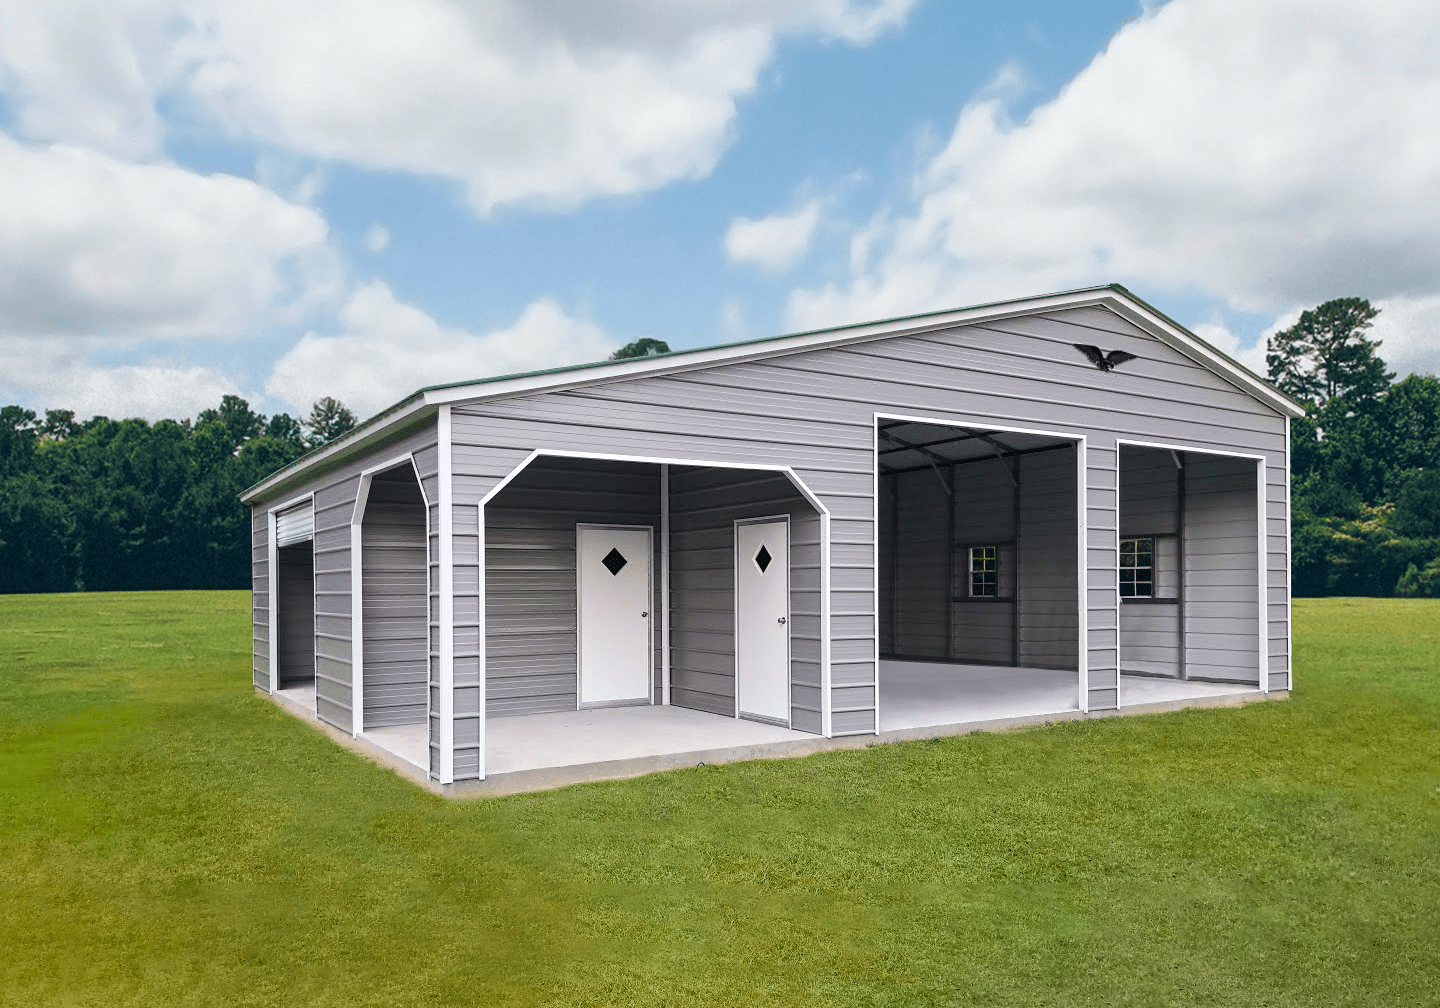 Think of the Possibilities! in 2020 Portable buildings